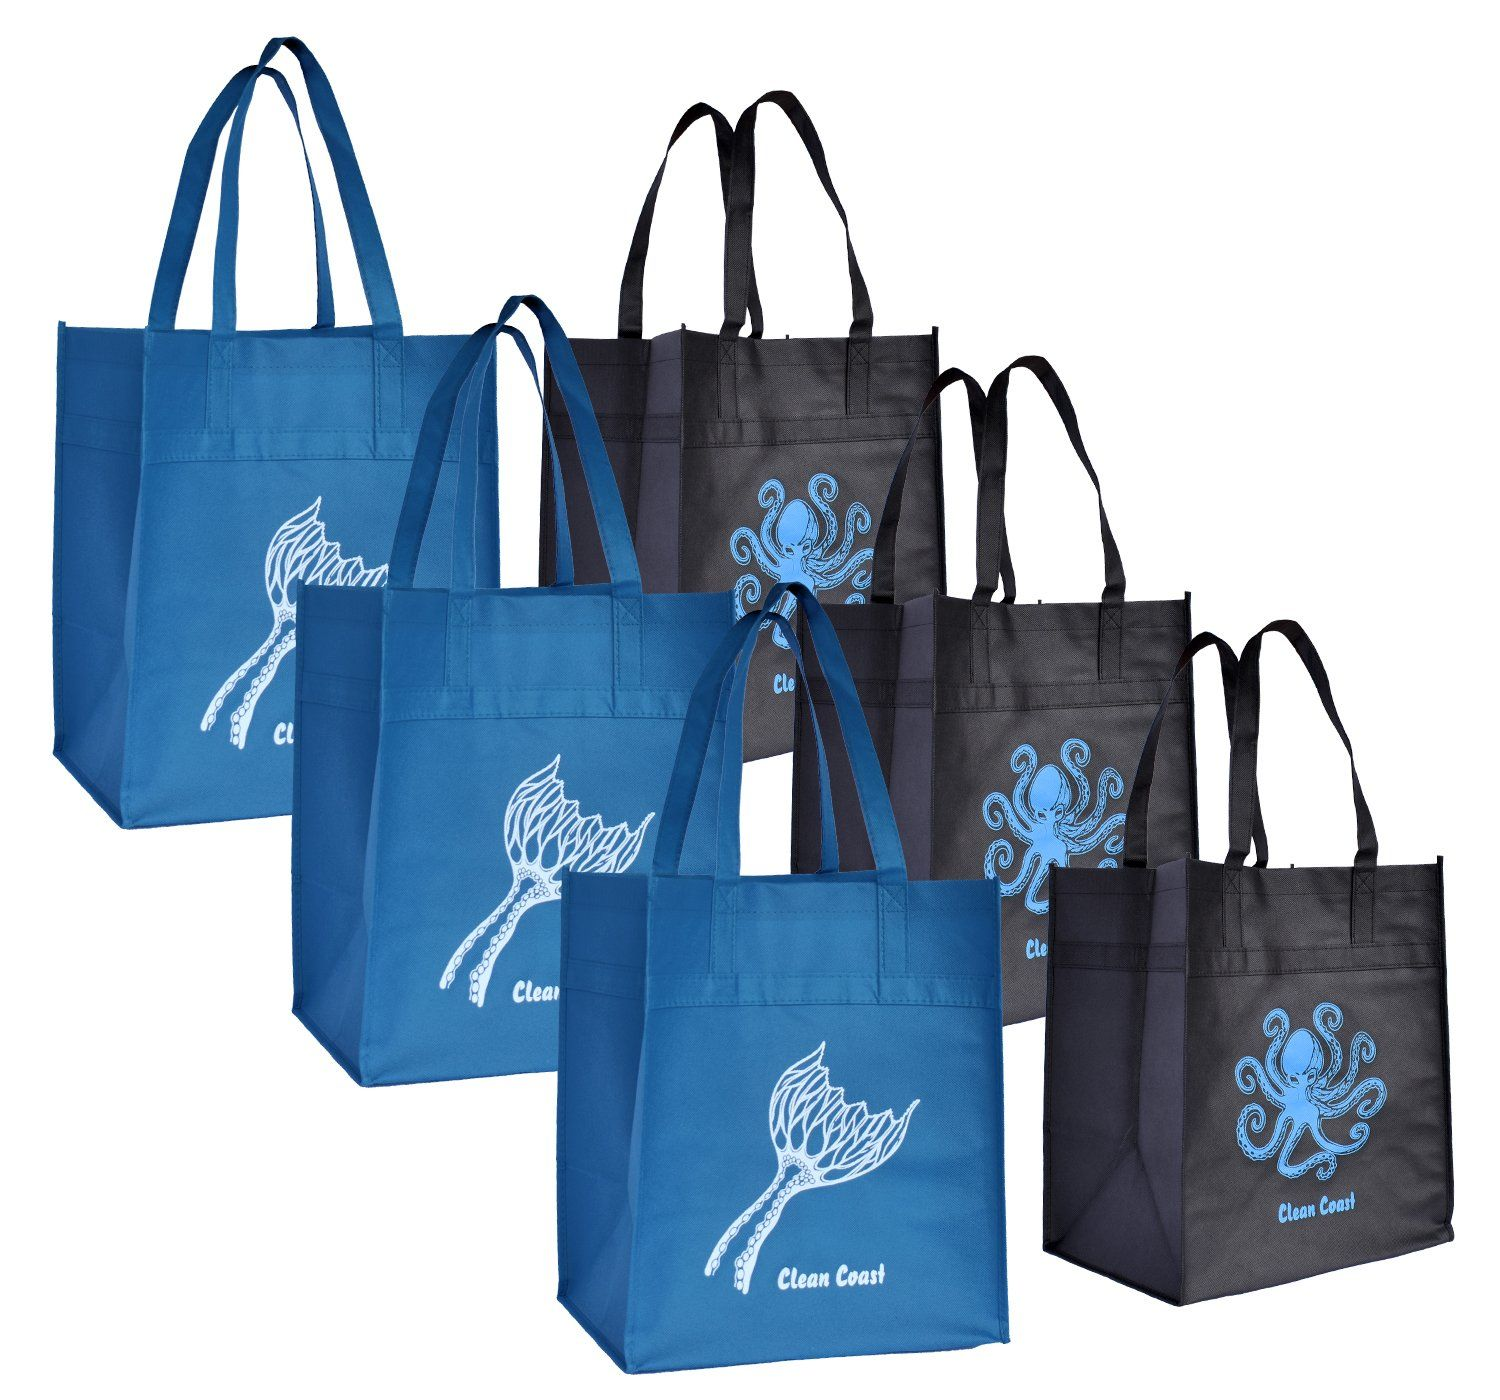 Reusable Grocery Shopping Tote Bags for Men   Women - (6 Pack 8e6585c38